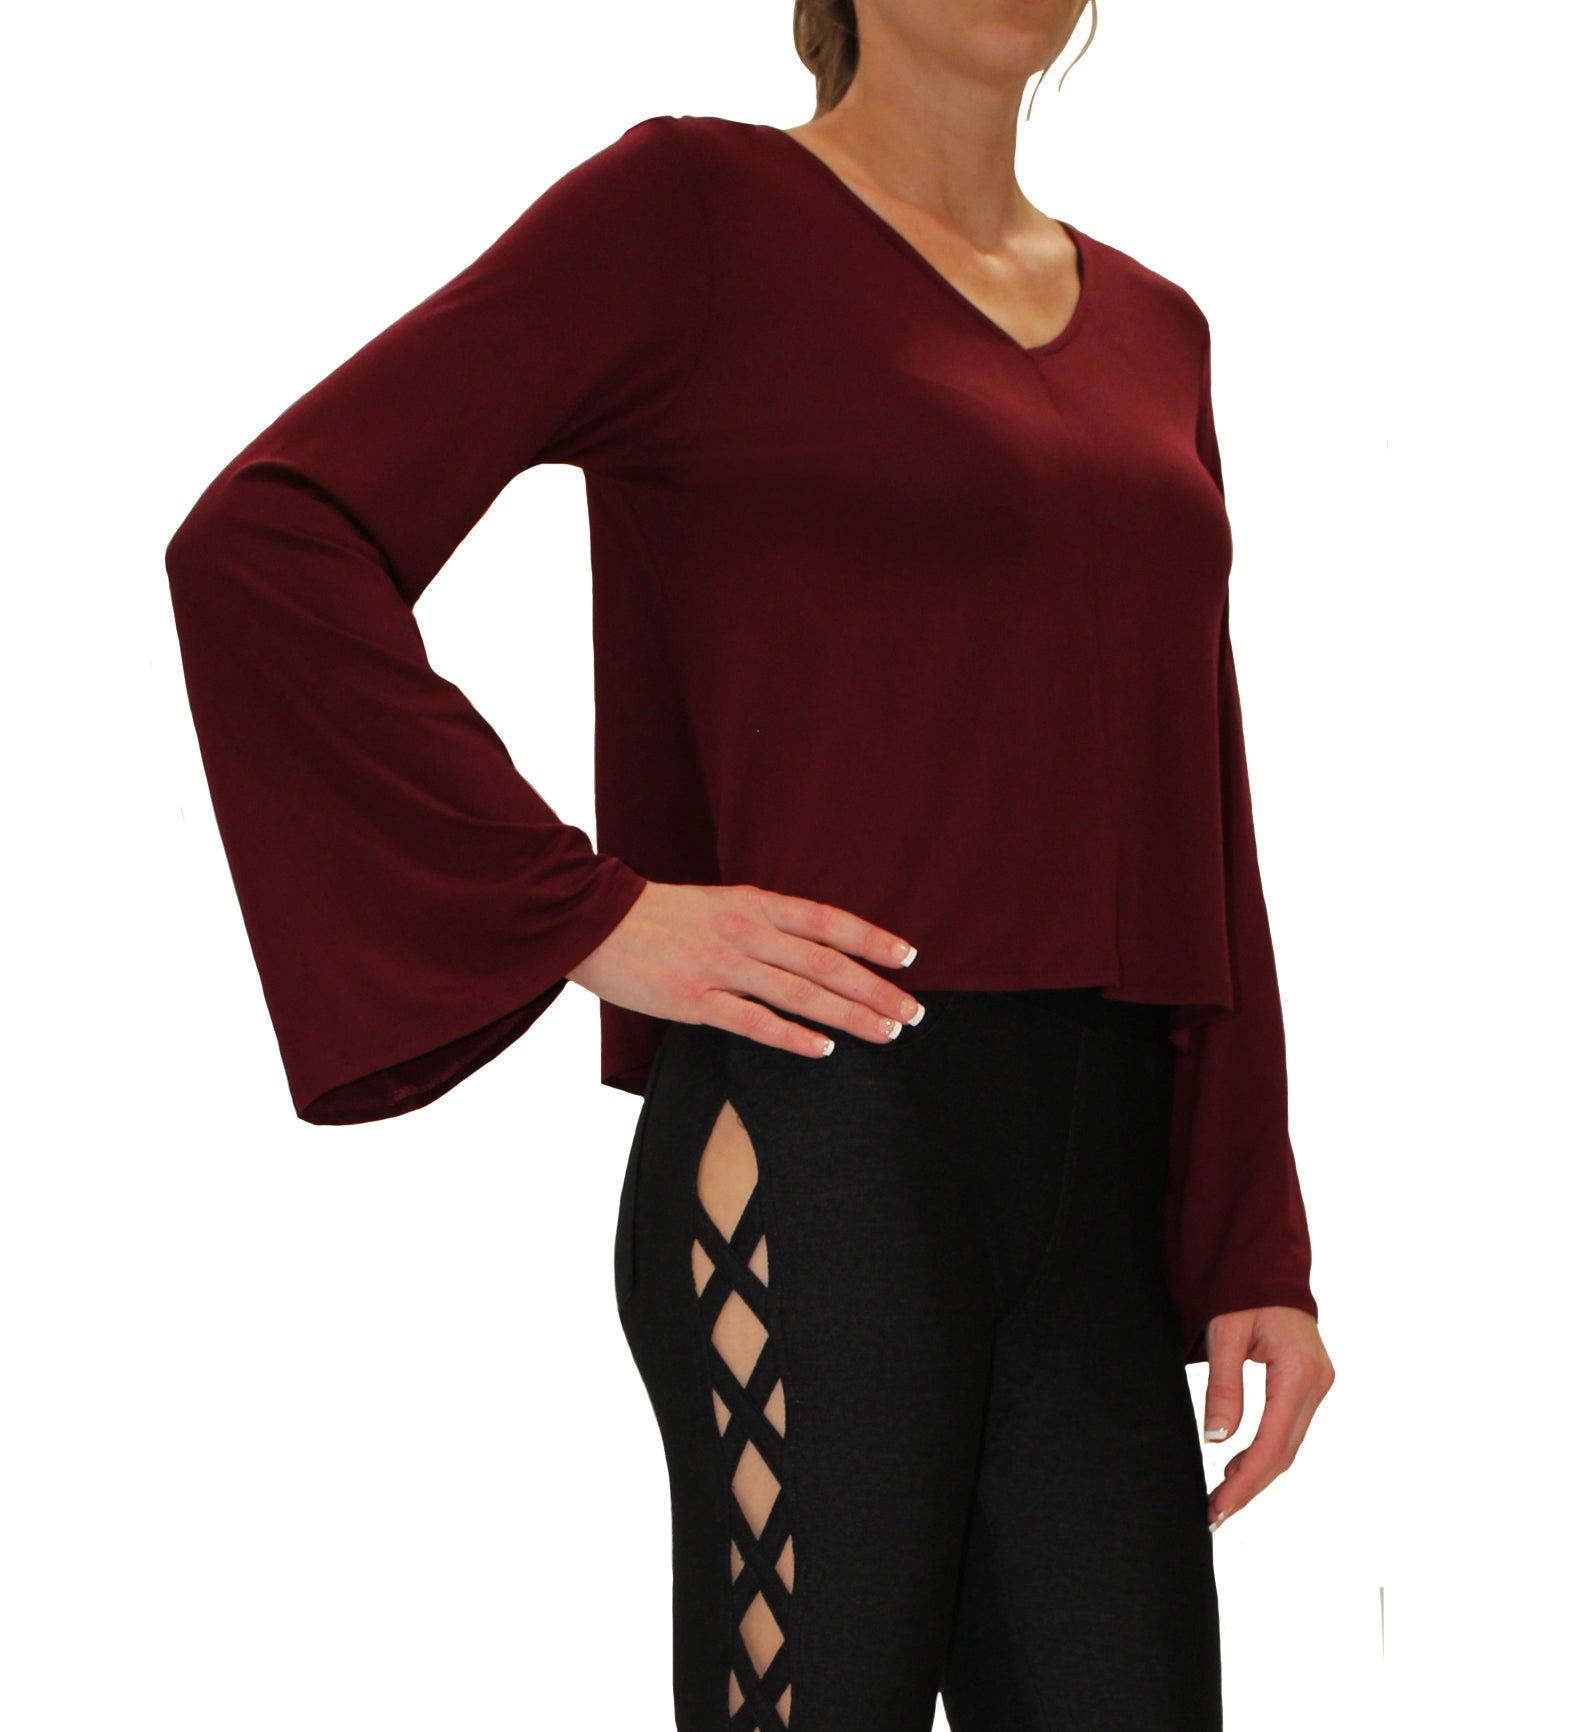 Promesa USA  Long Sleeve Top with Bell Sleeves in Burgundy